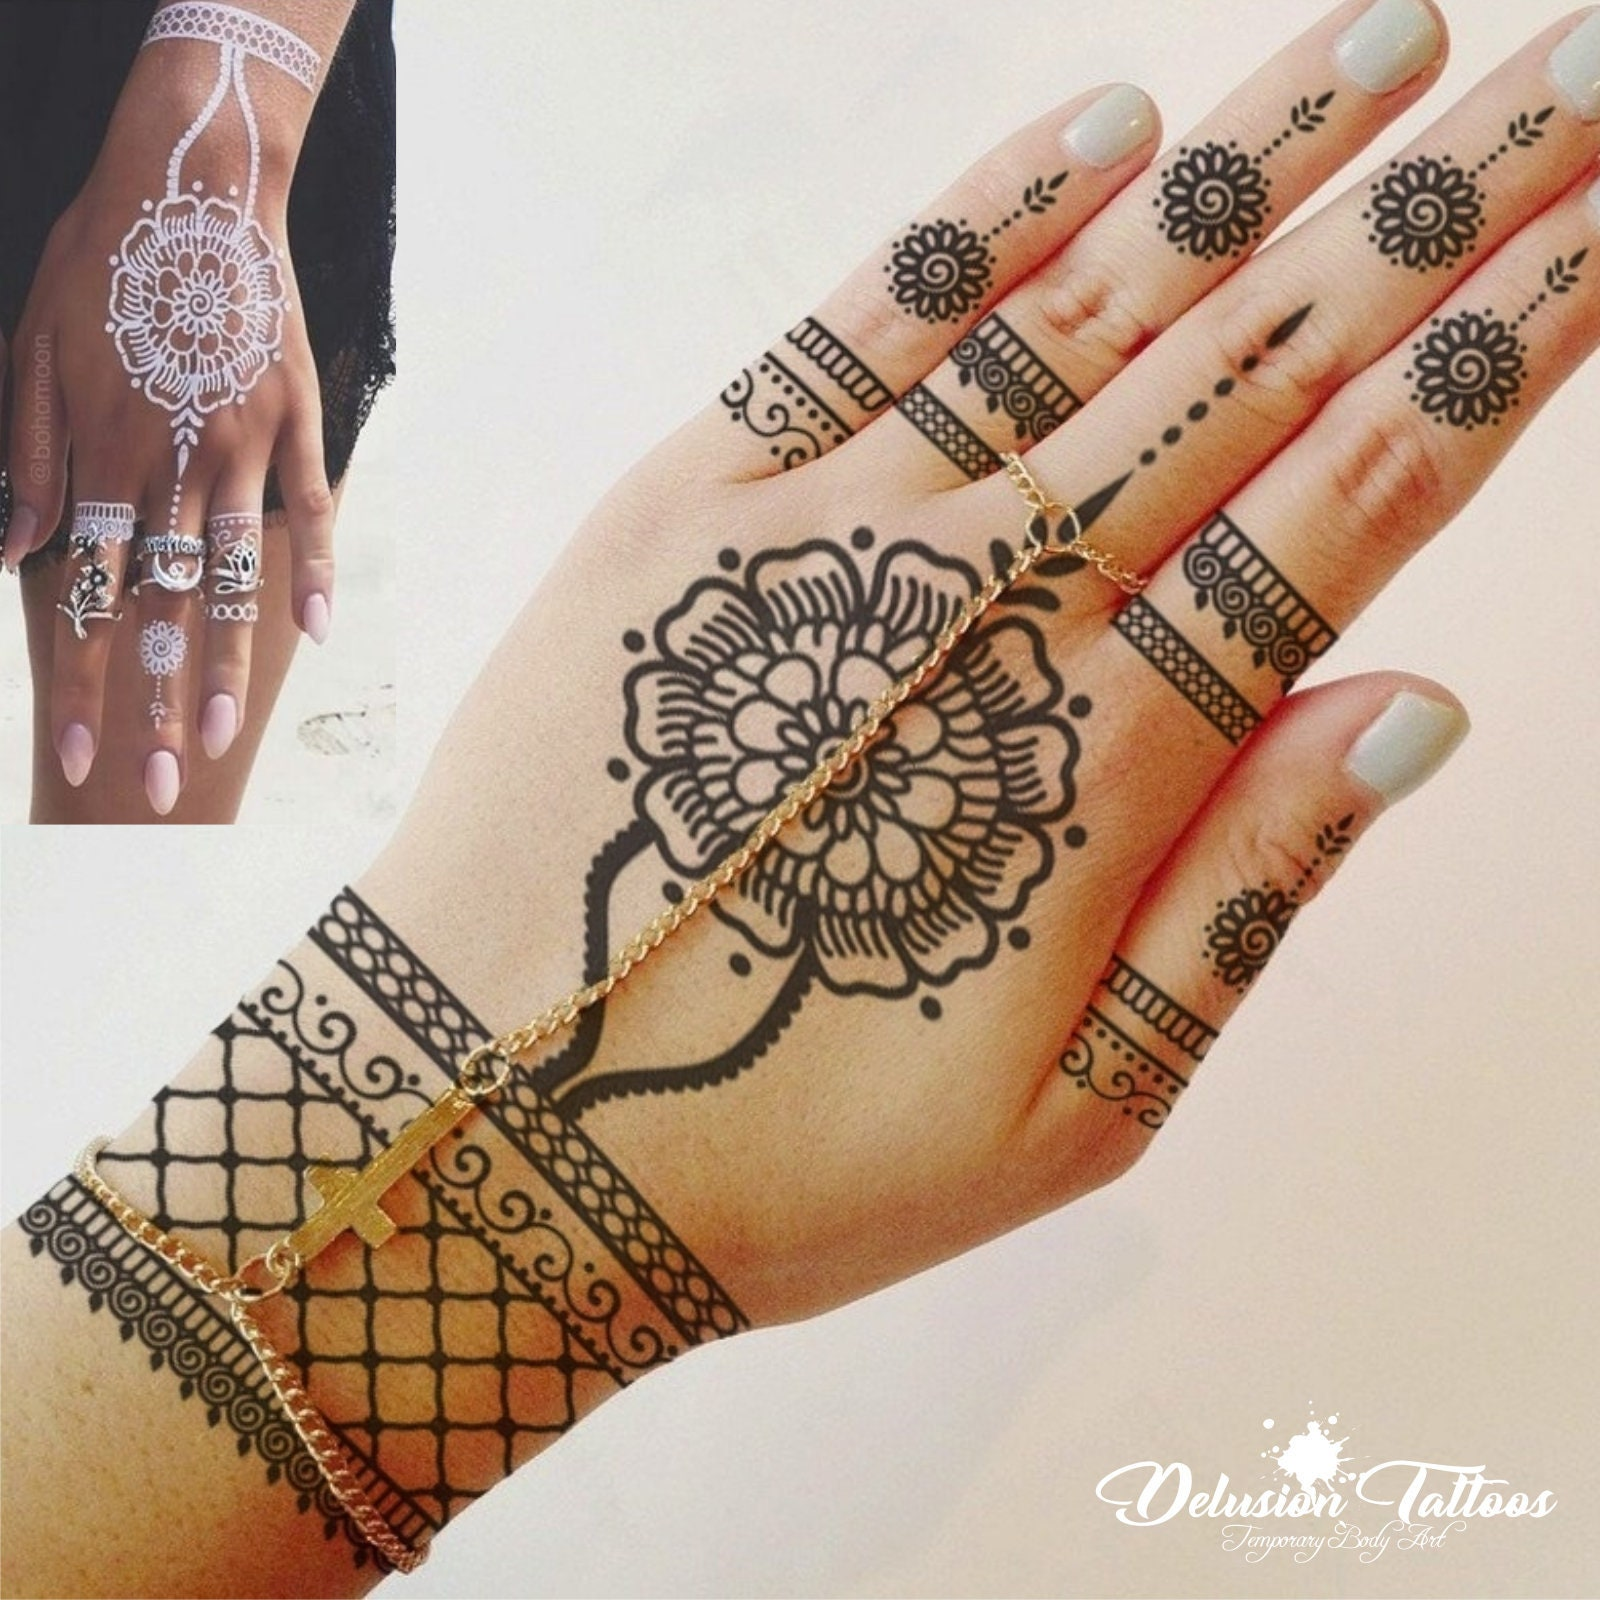 Temporary Tattoo Ink Like Henna: Henna Temporary Tattoo Sticker Transfer Black Henna White